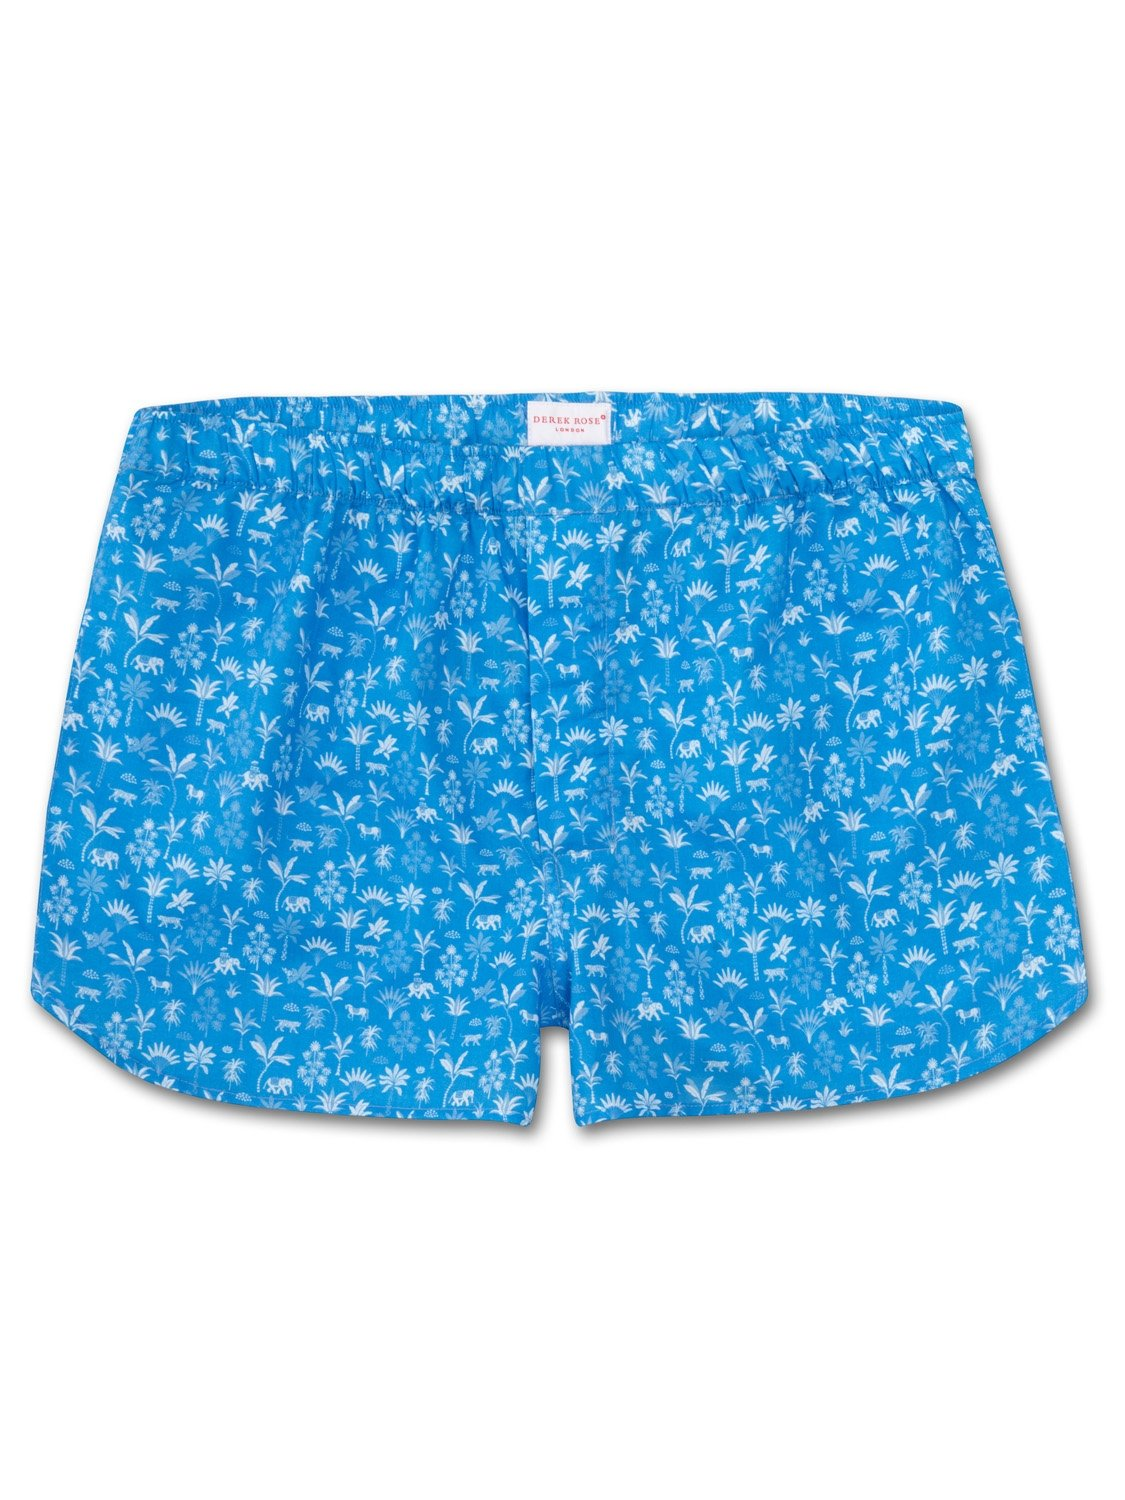 Men's Modern Fit Boxer Shorts Ledbury 8 Cotton Batiste Blue